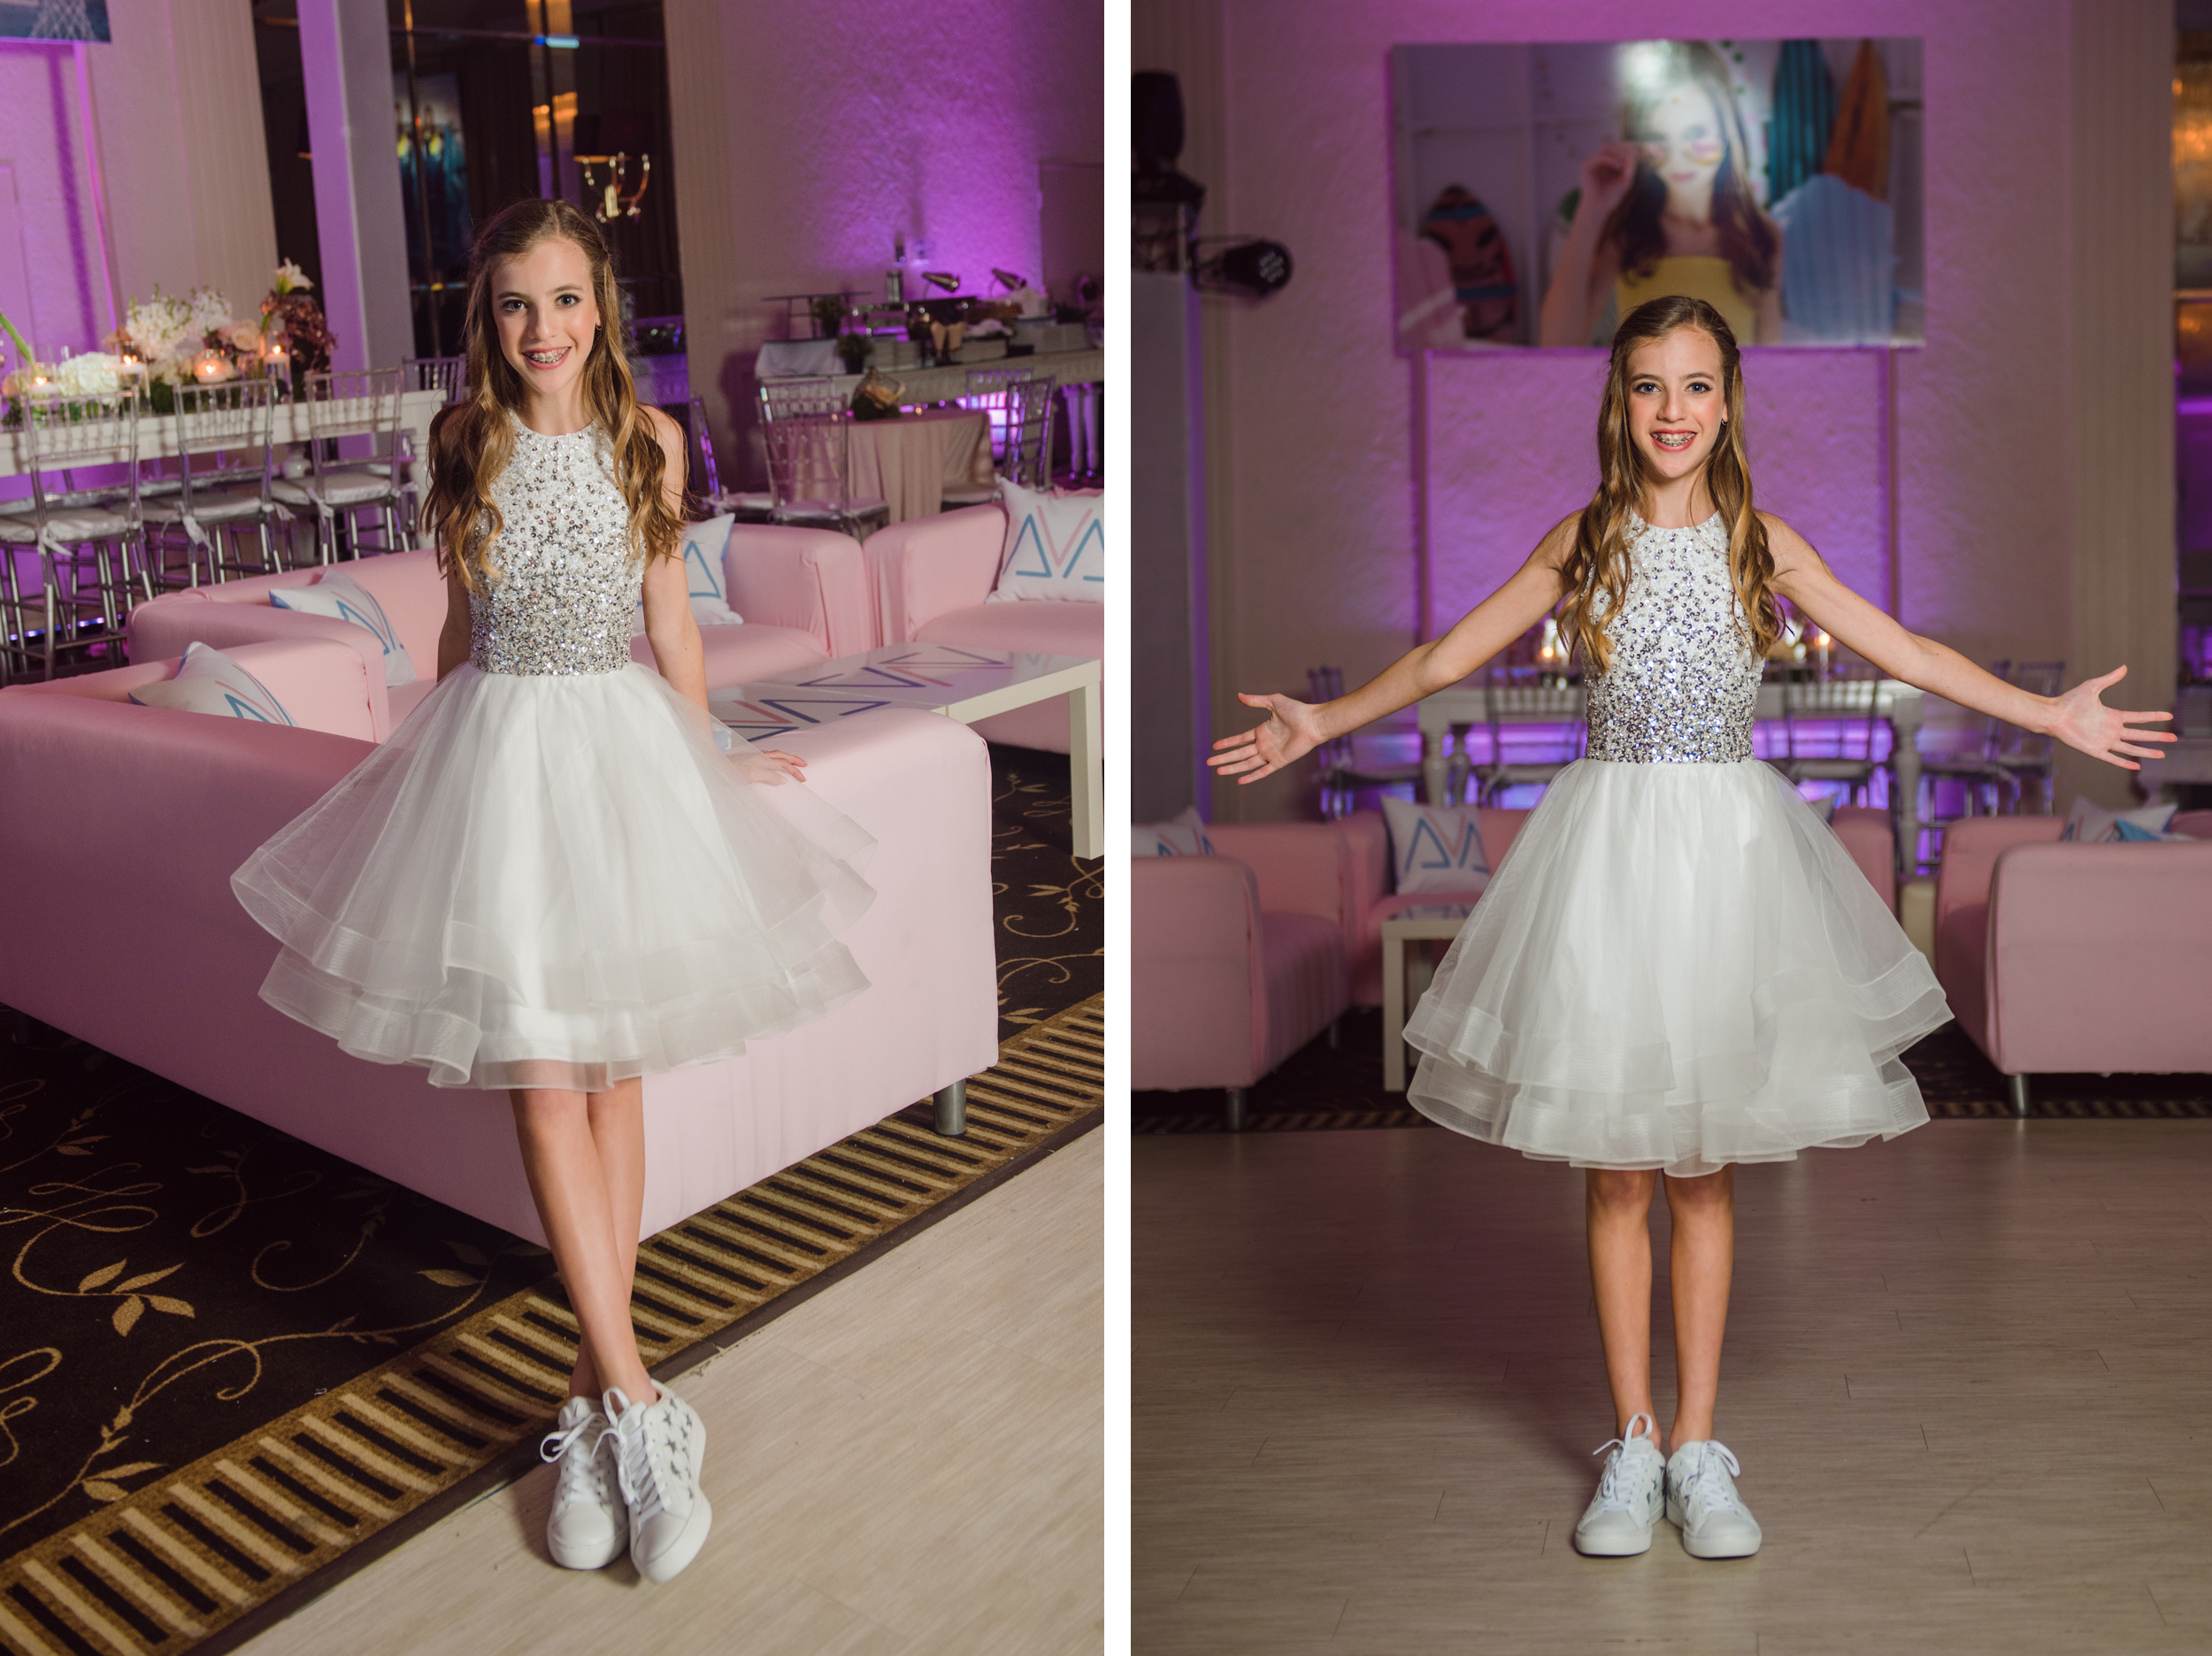 fort lauderdale bat mitzvah photographer.jpg